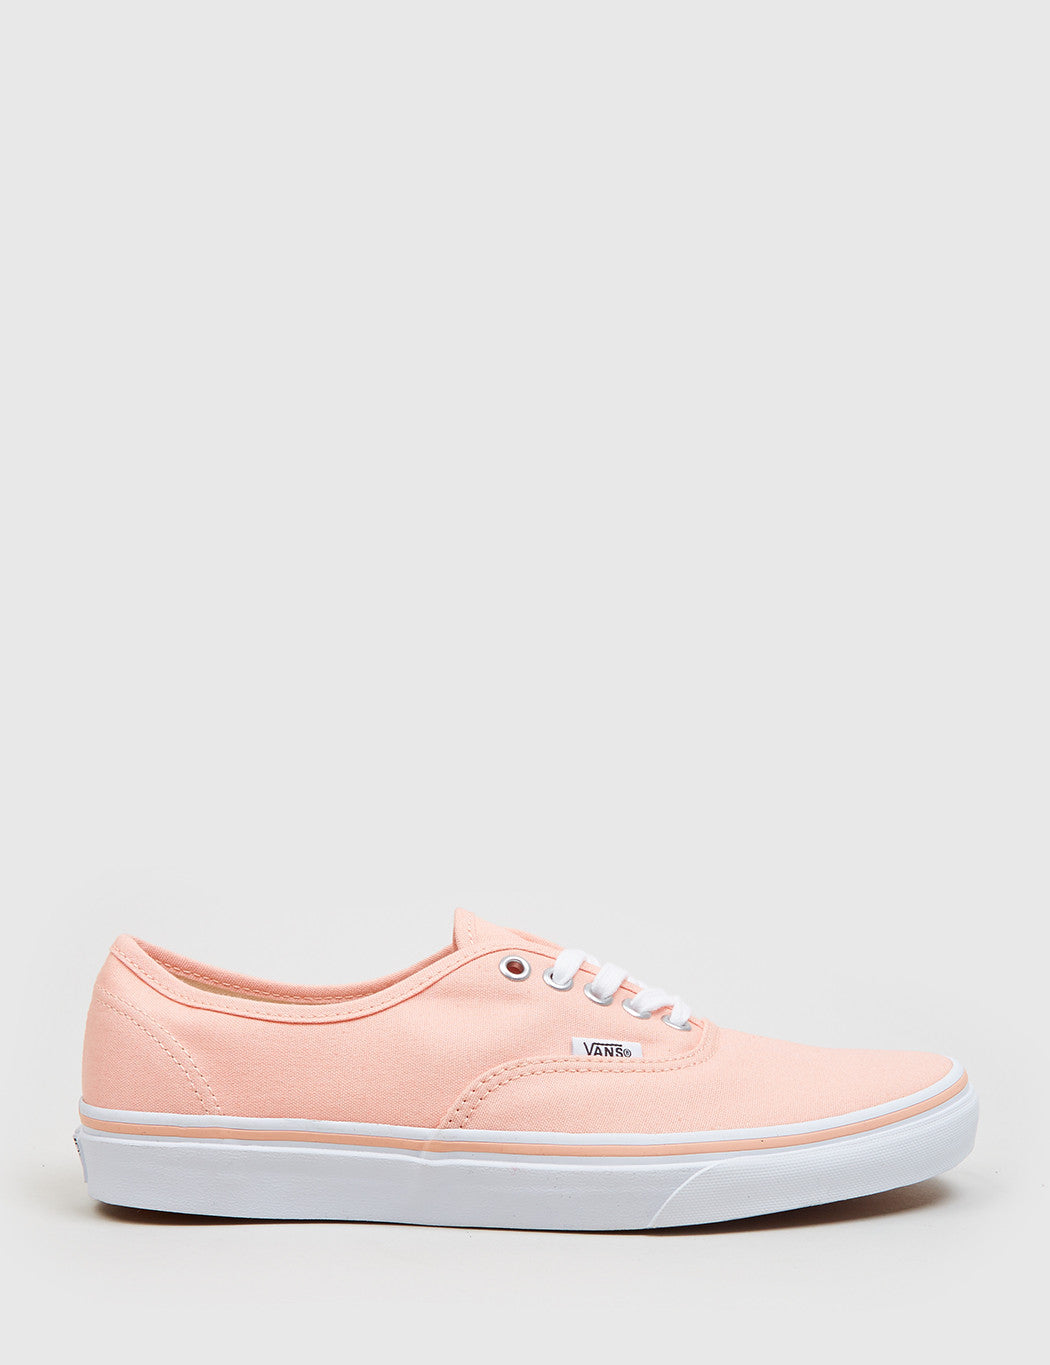 29fb1b3bbaad Vans Pastels Authentic (Canvas) - Peach